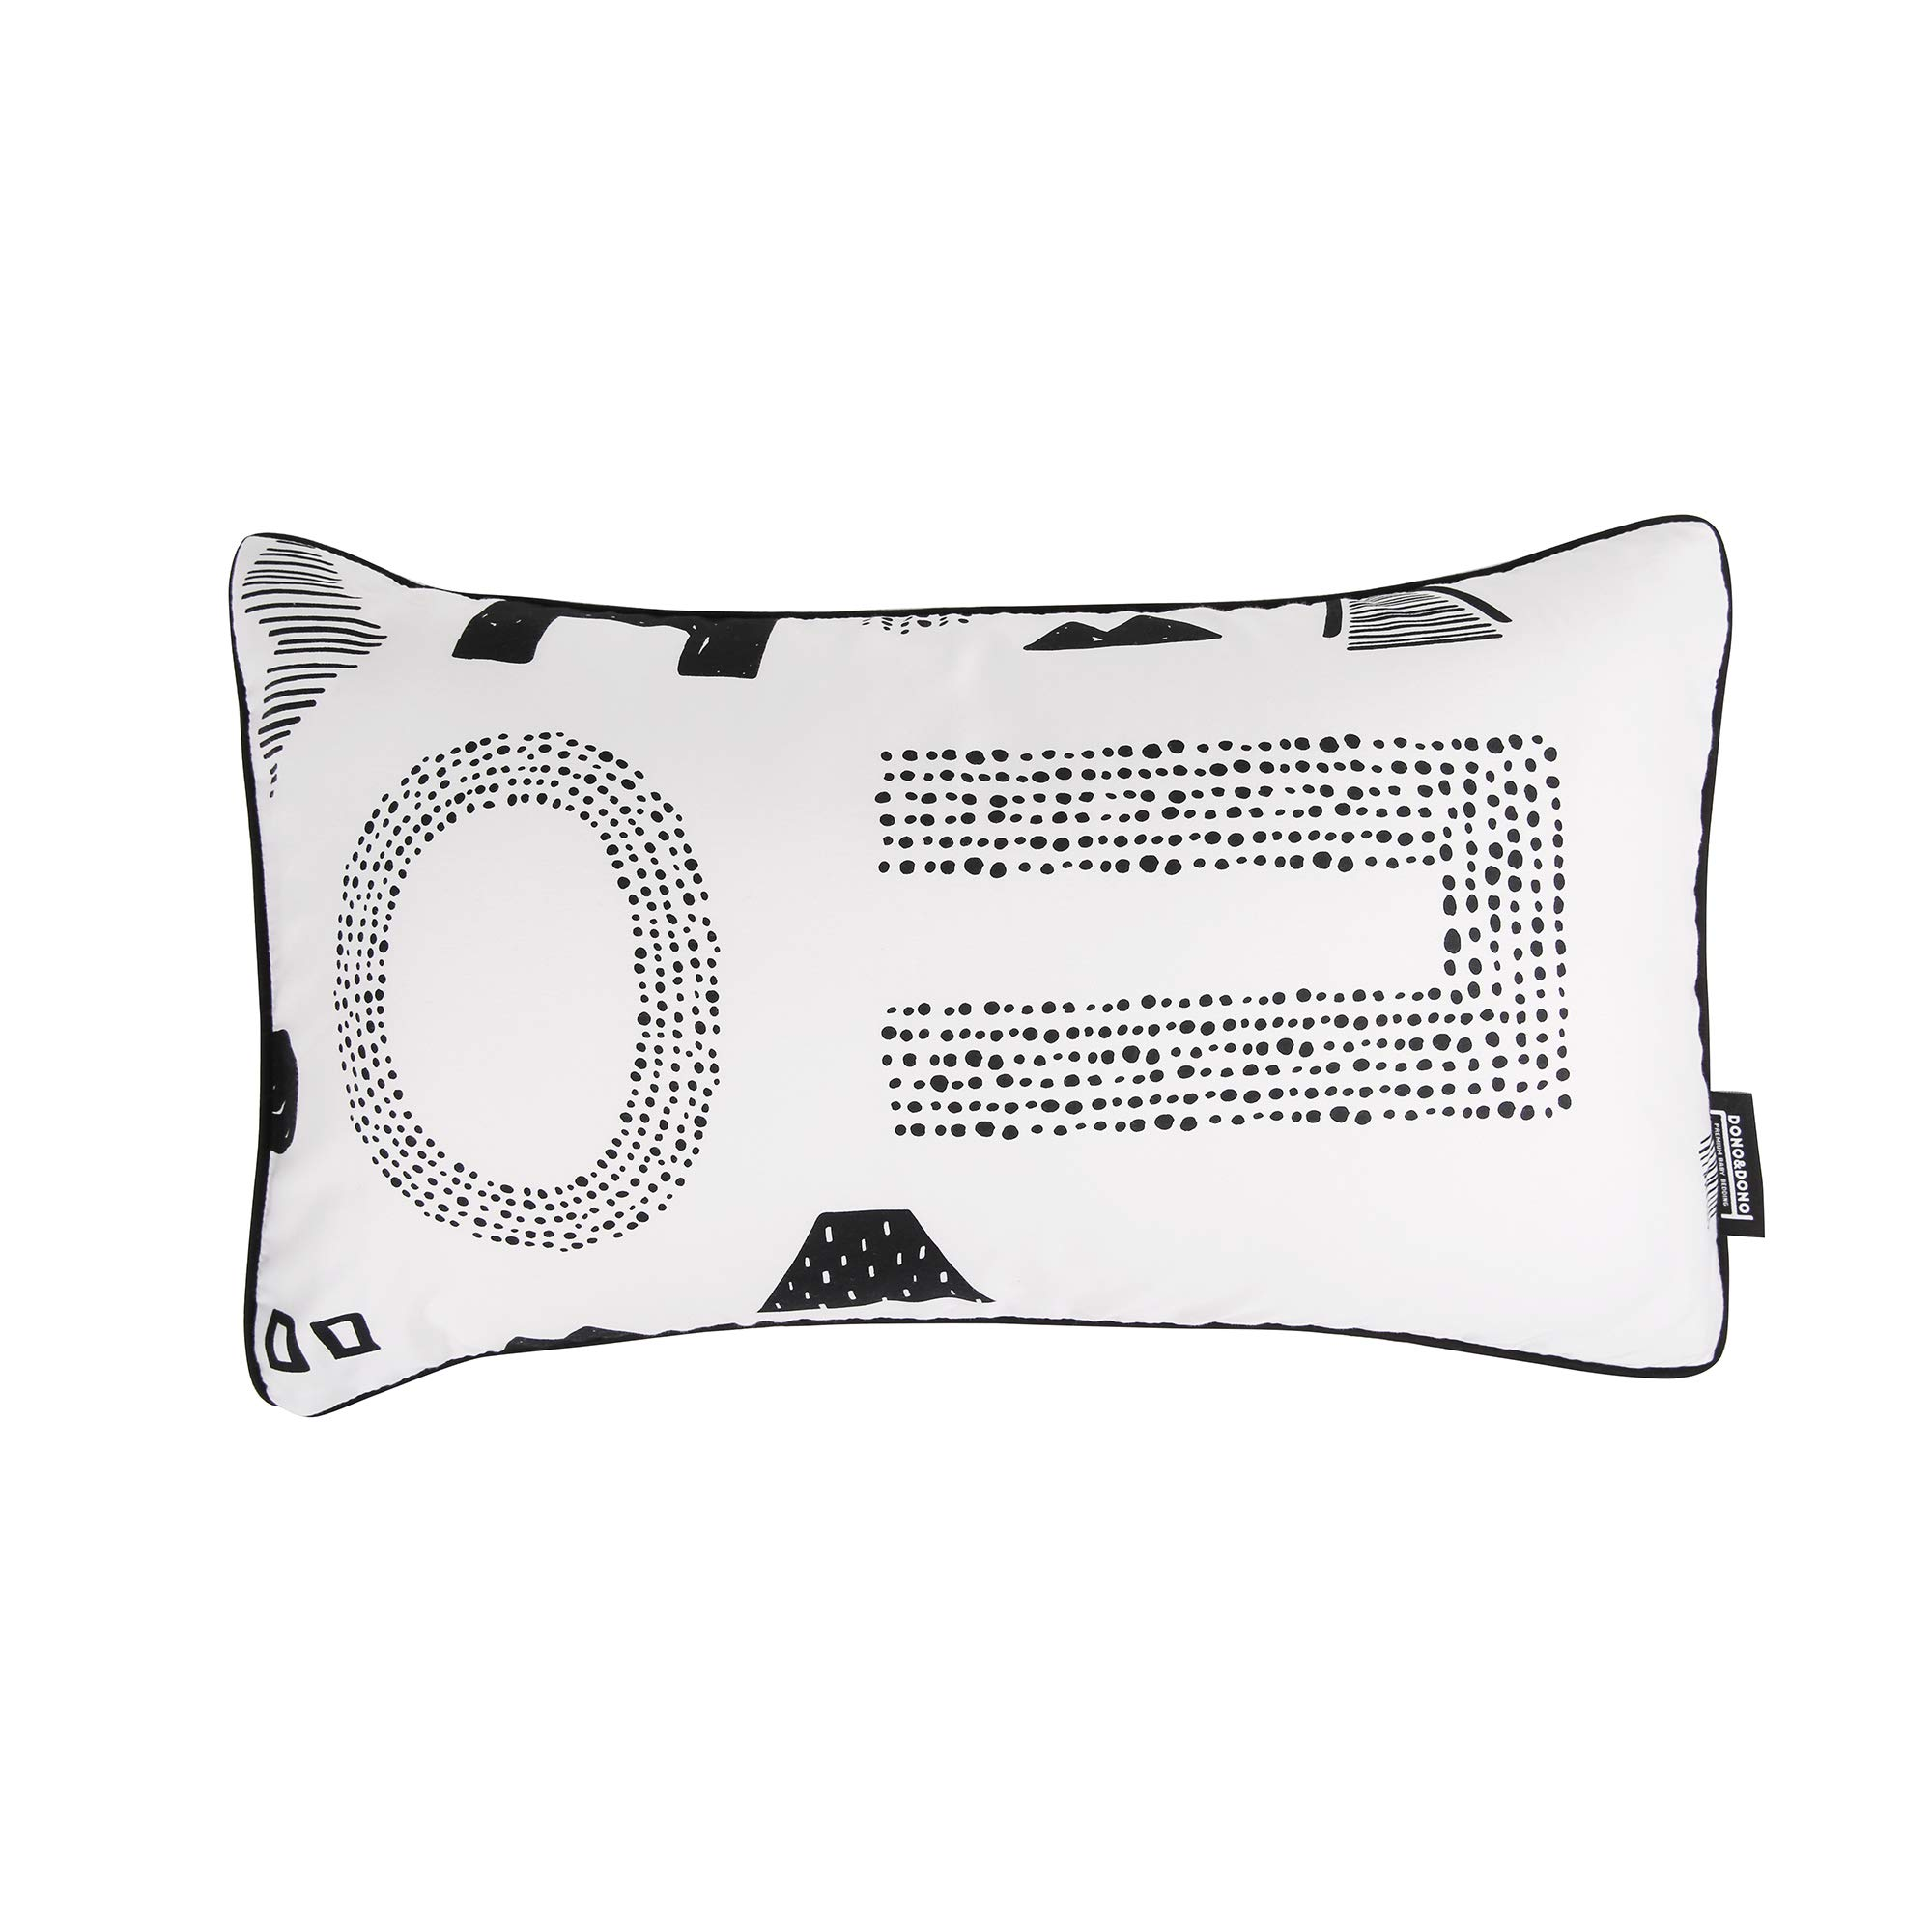 Dono&Dono Airflow Pillow and Pillowcase for Toddlers and Kids, Micromodal Moisture Wicking. (Maze Letter)